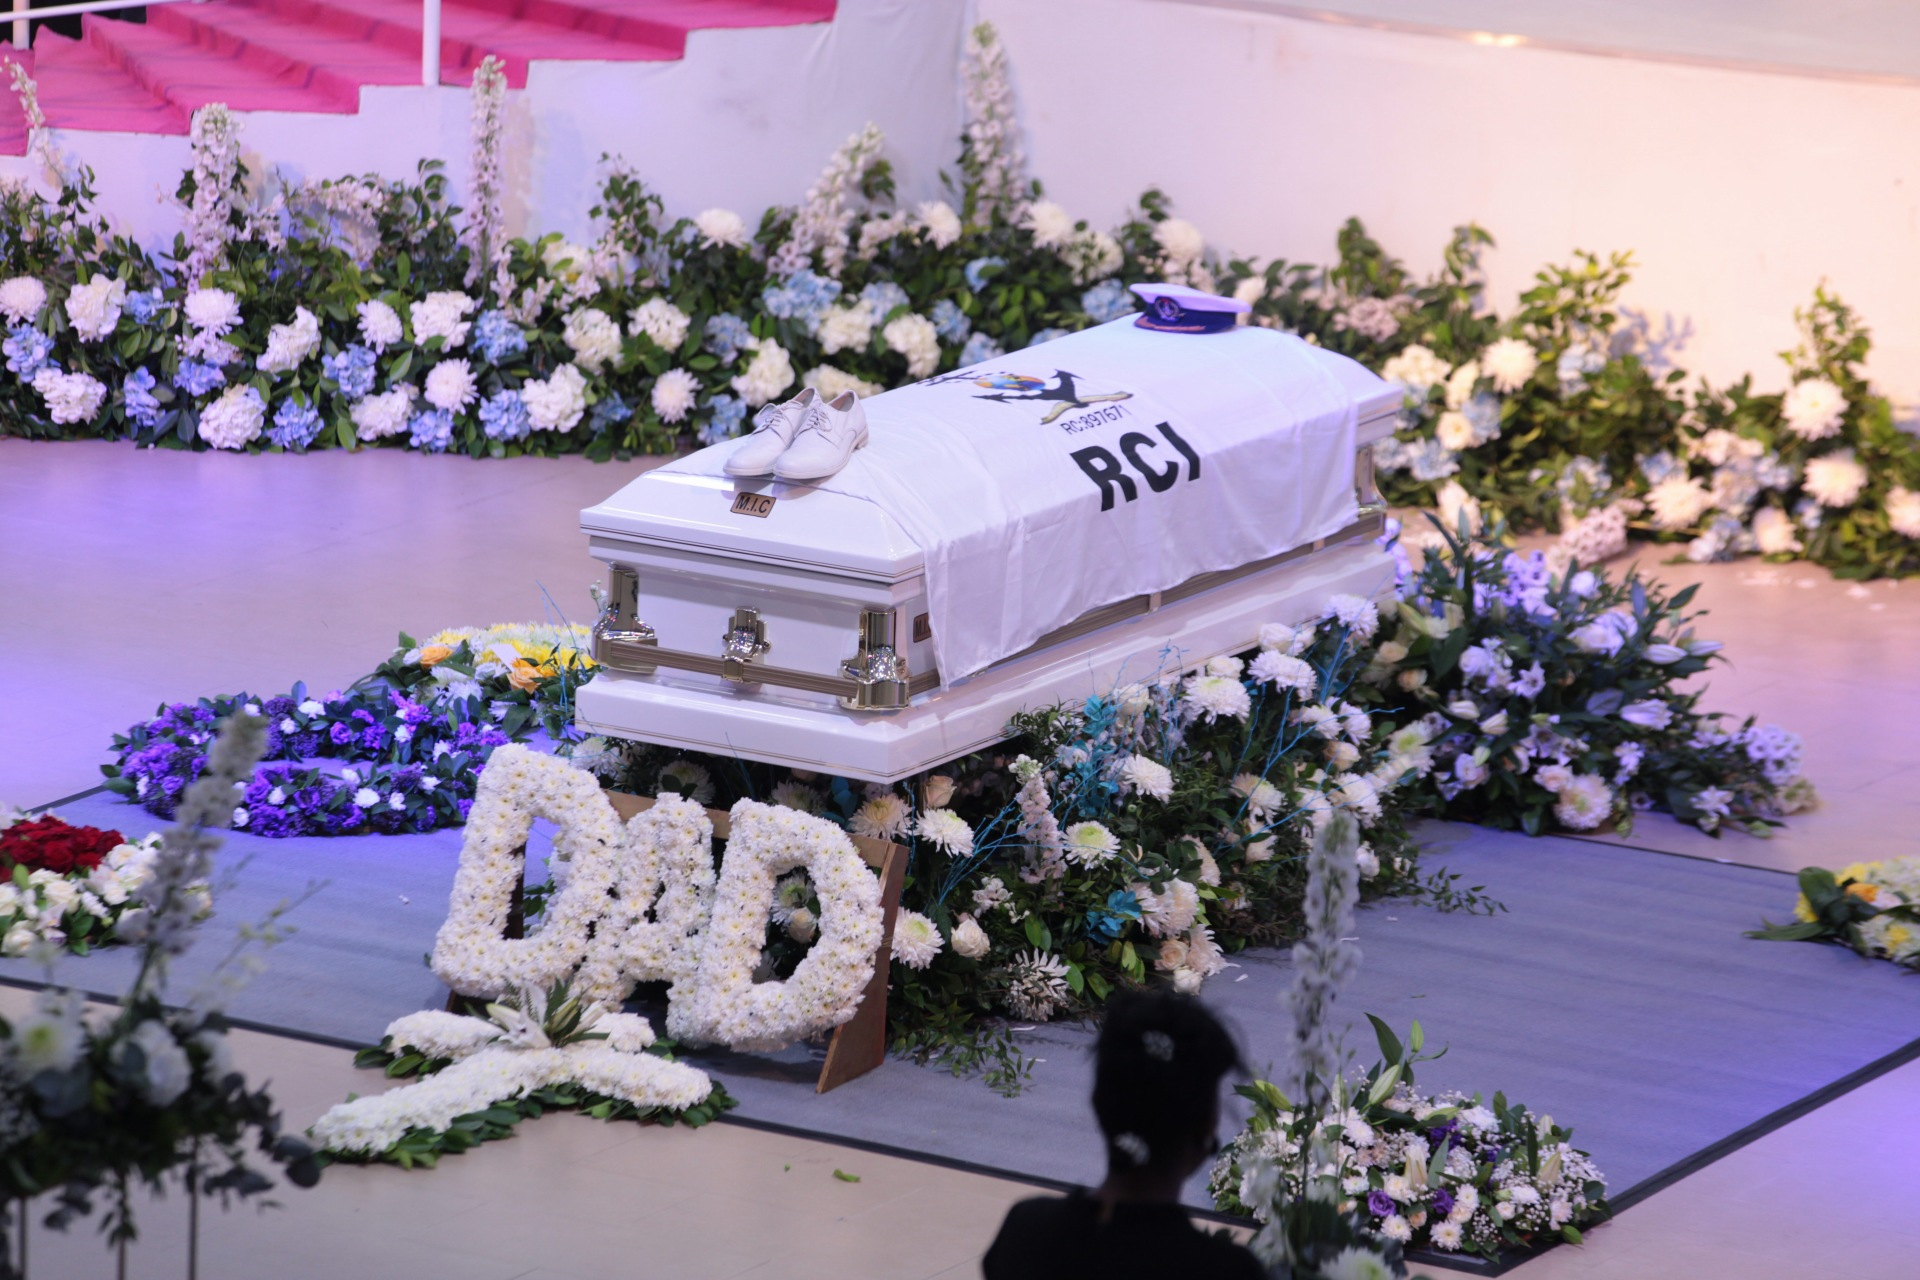 Remains of Pastor Dare Adeboye at the farewell service at the Youth Centre, Redemption Camp